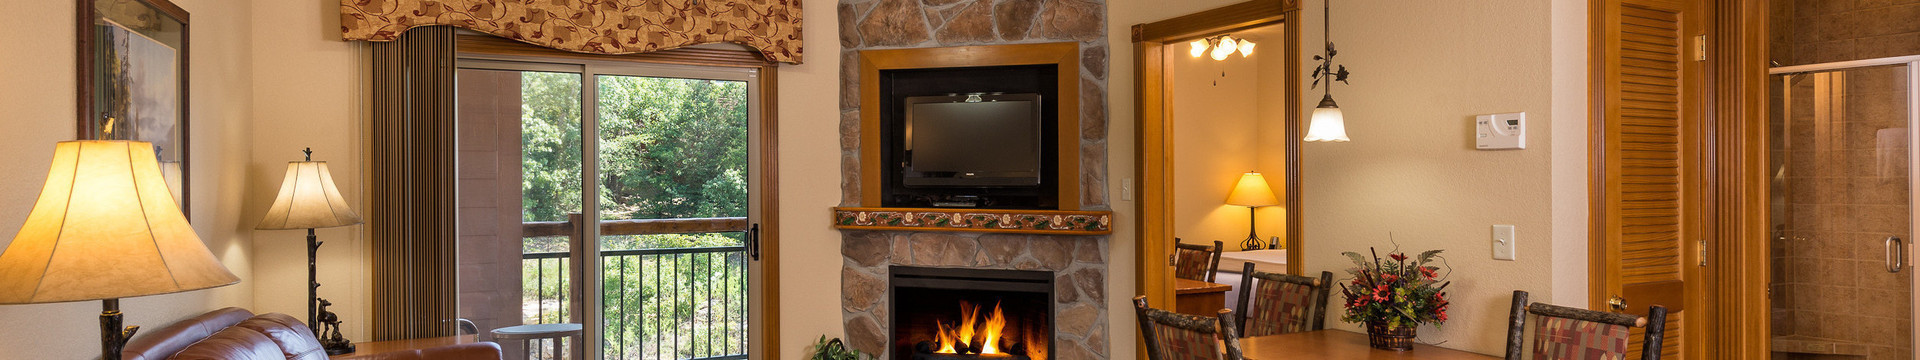 1 Bedroom Villa Suites at our Branson Hotel near Roark Valley Road | Accommodations Suites Fireplace